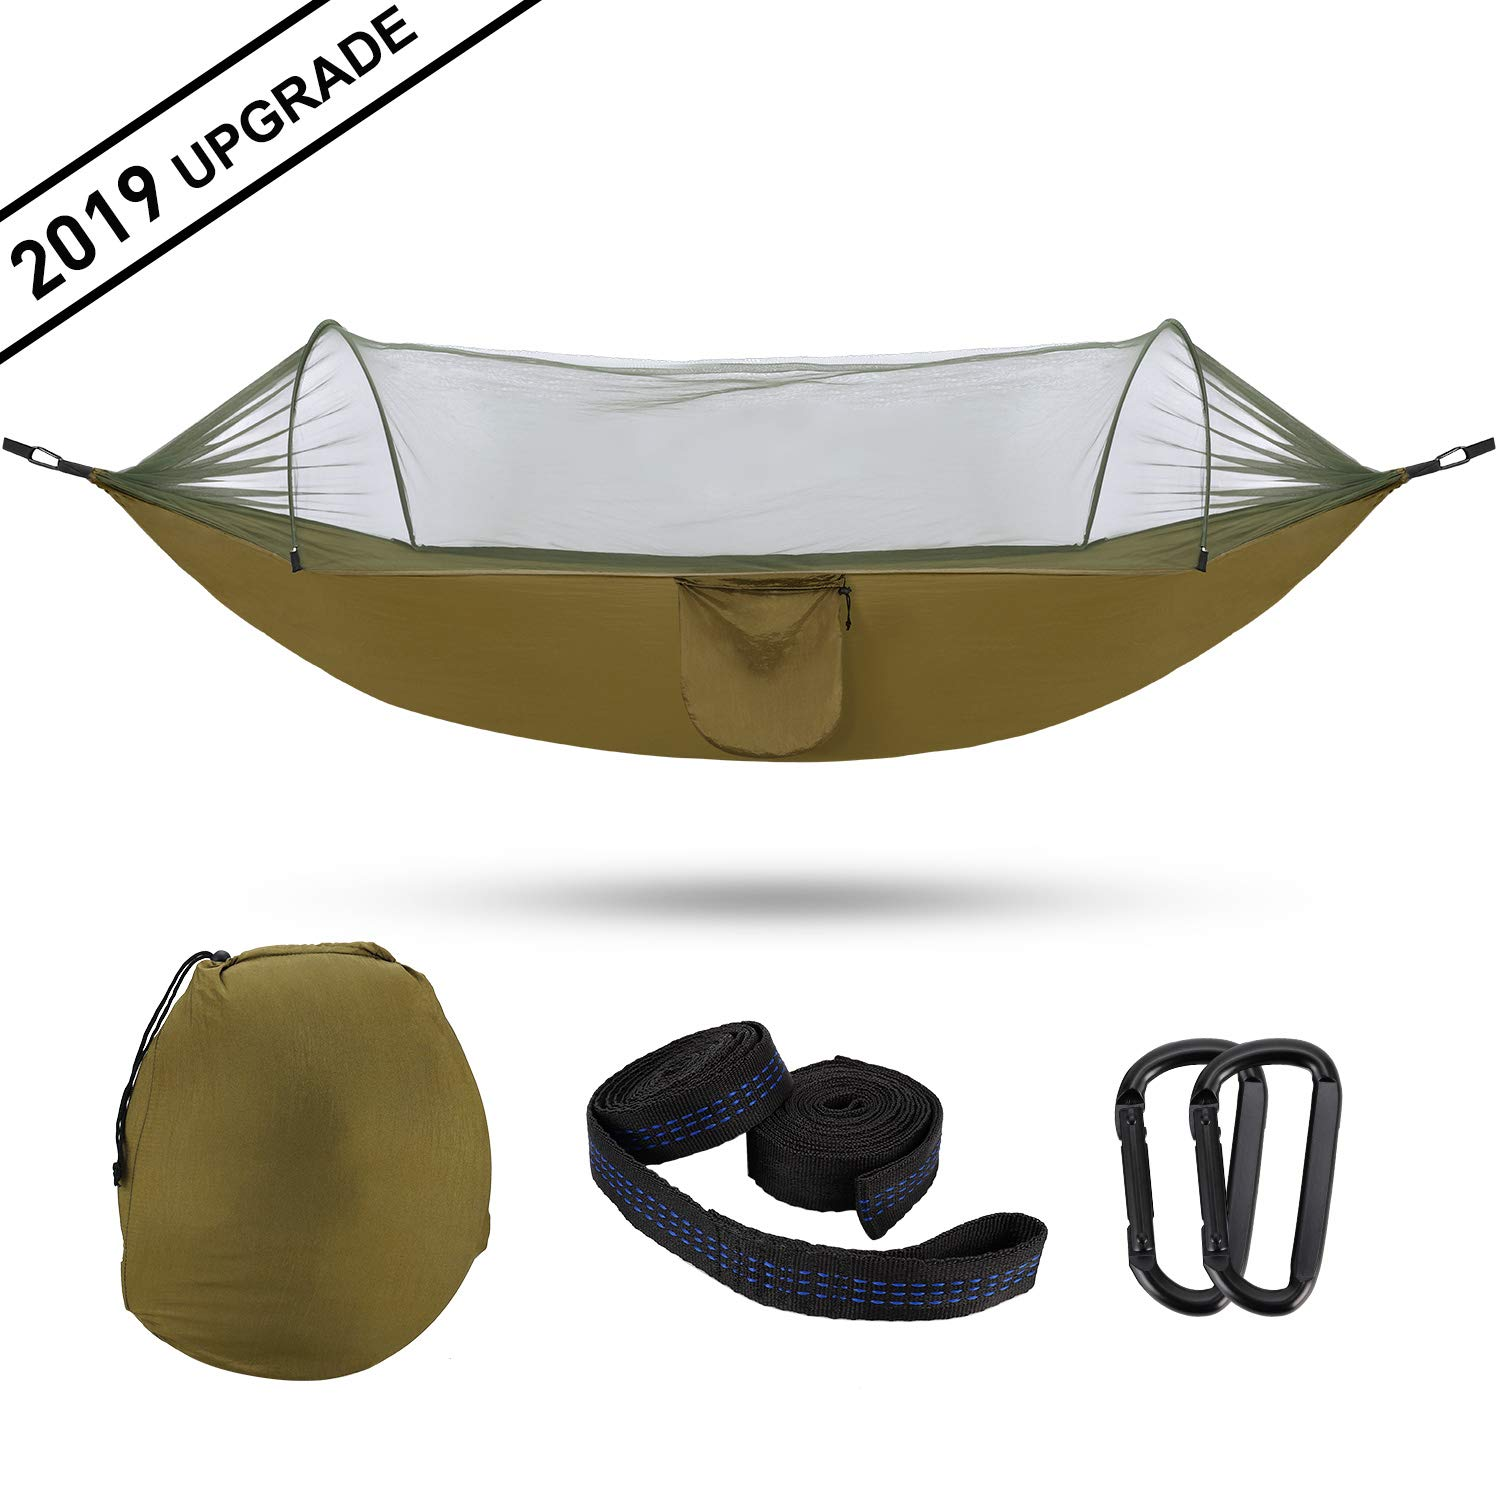 Gsung Camping Hammocks with Pop-Up Mosquito Net,Large Size Outdoor Hammock Portable Swing 2 in 1,Anti-Mosquito Design Hammocks for Outdoor, Hiking, Travel